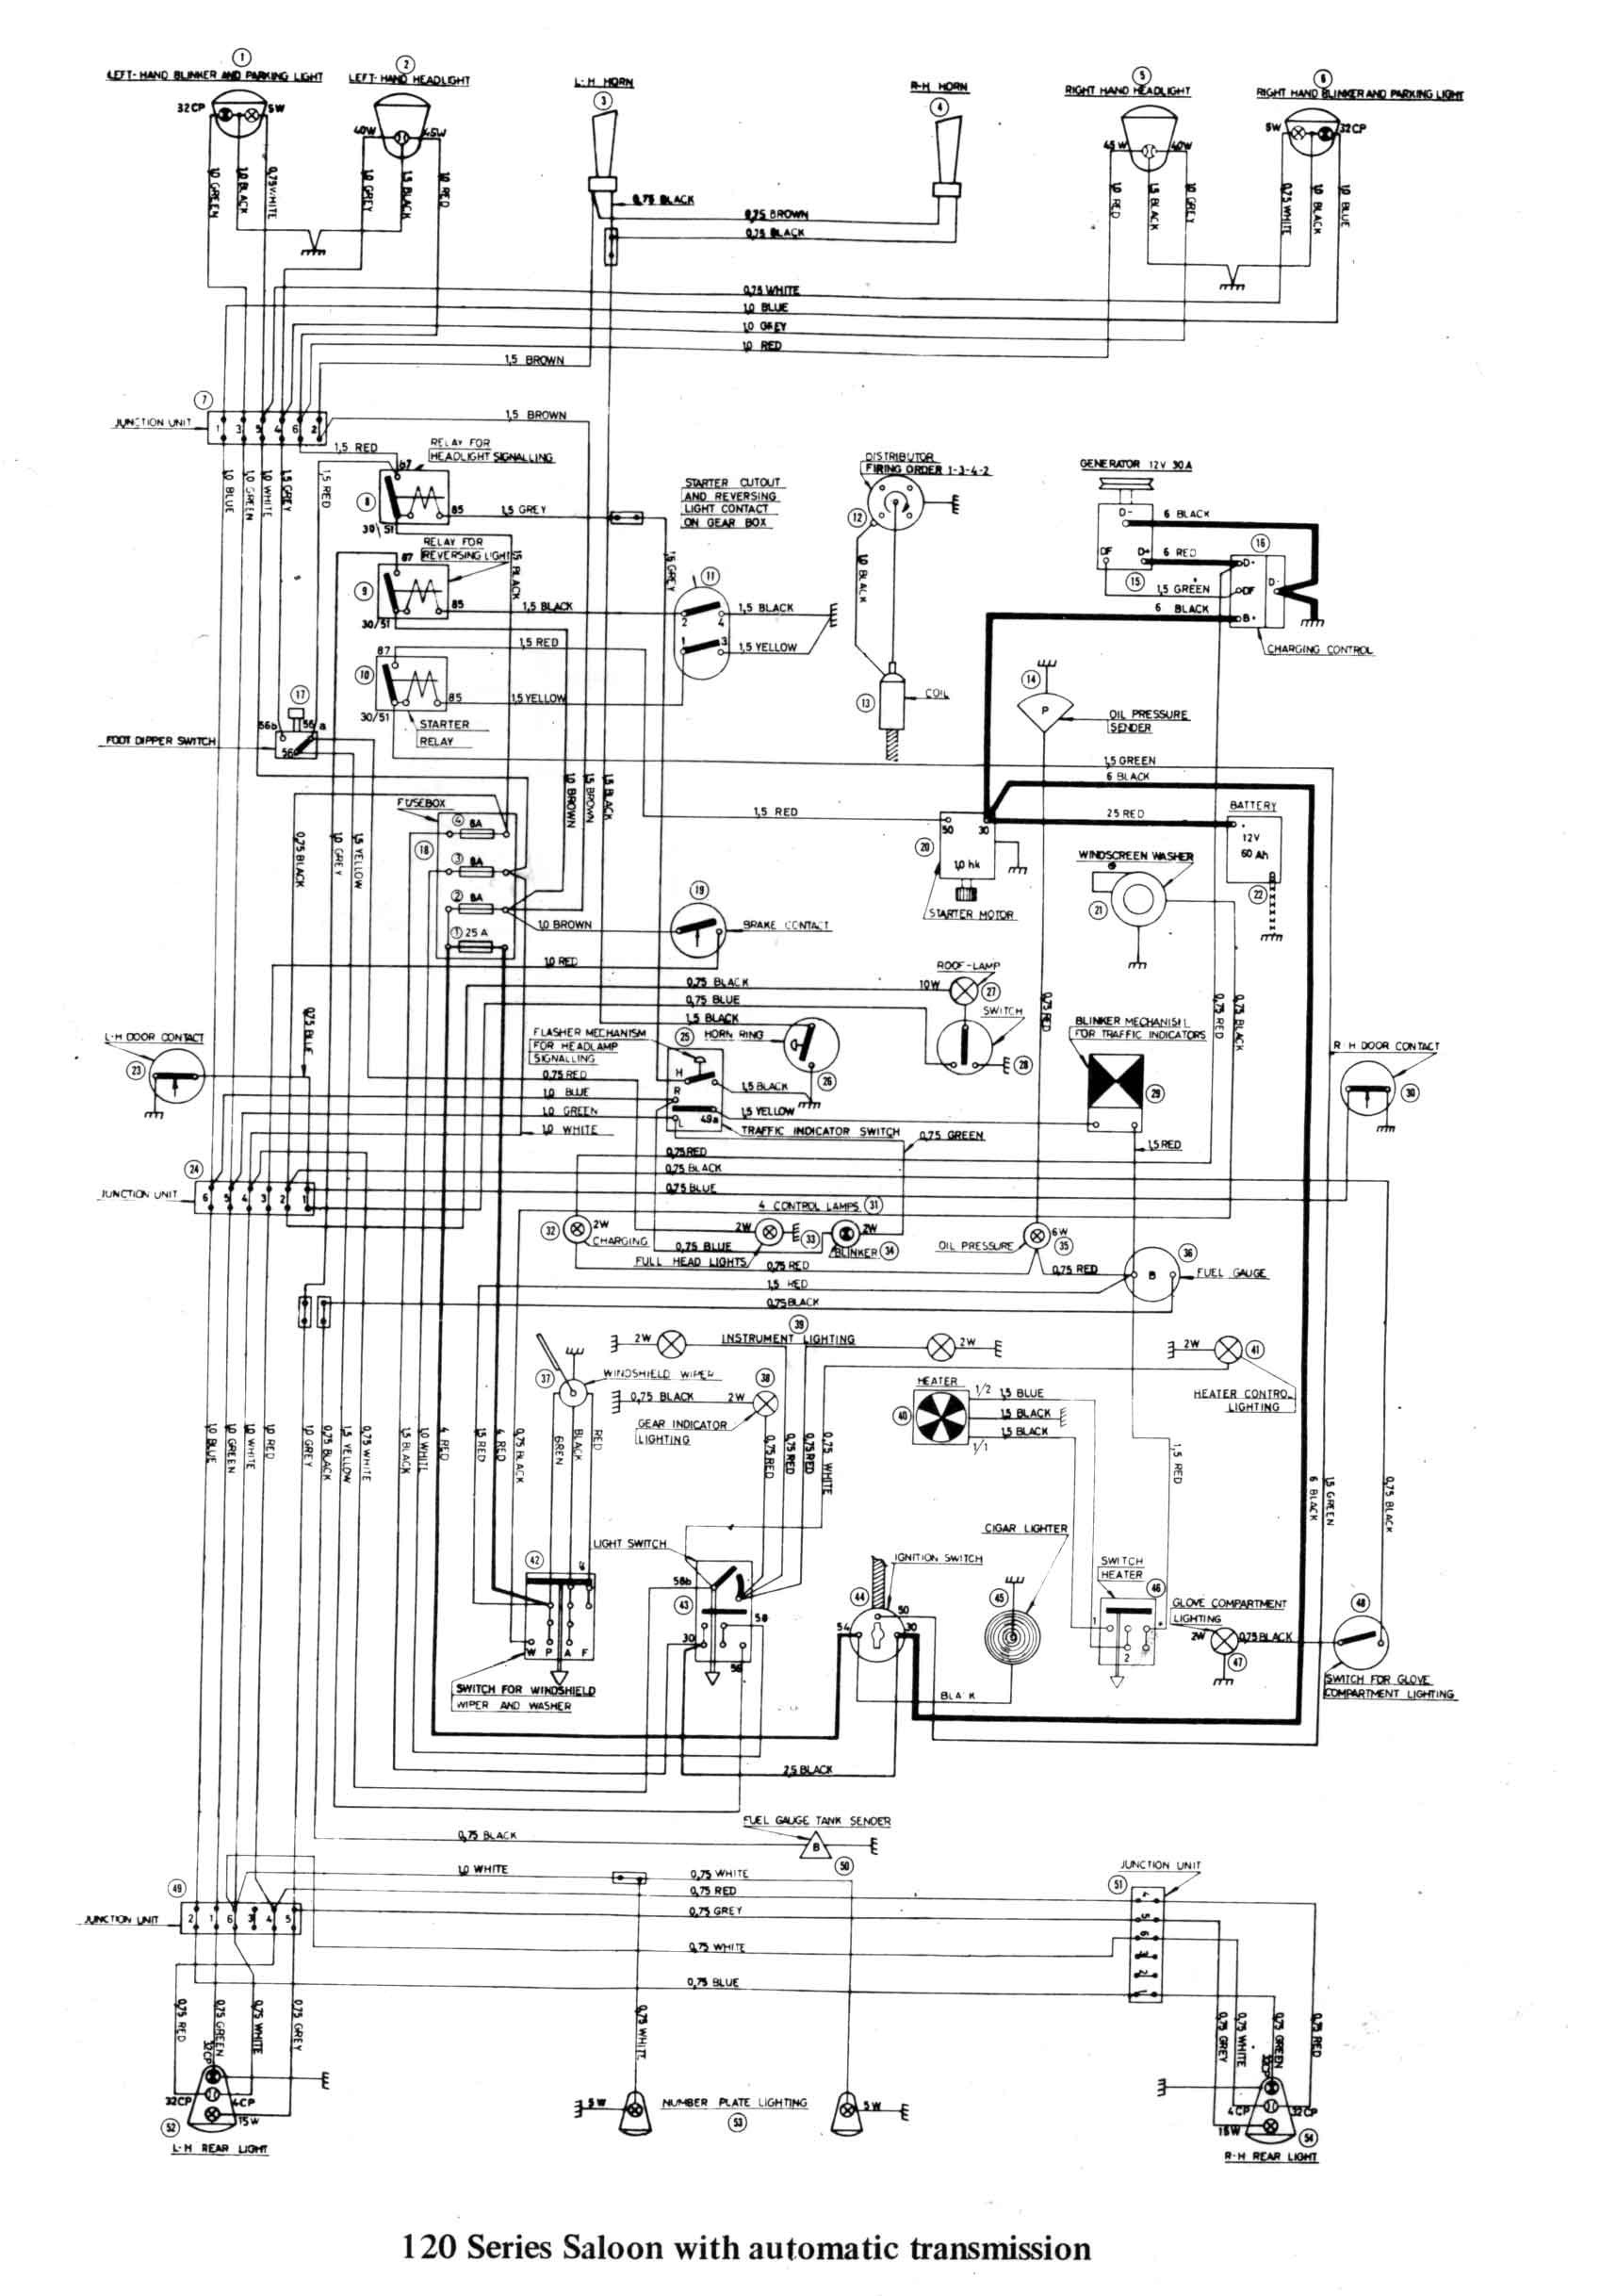 Ford F150 Tail Light Wiring Diagram Volvo Lights Wiring Diagram Custom Wiring Diagram • Of Ford F150 Tail Light Wiring Diagram 1995 Chevy Truck Tail Light Wiring Diagram Trusted Wiring Diagram